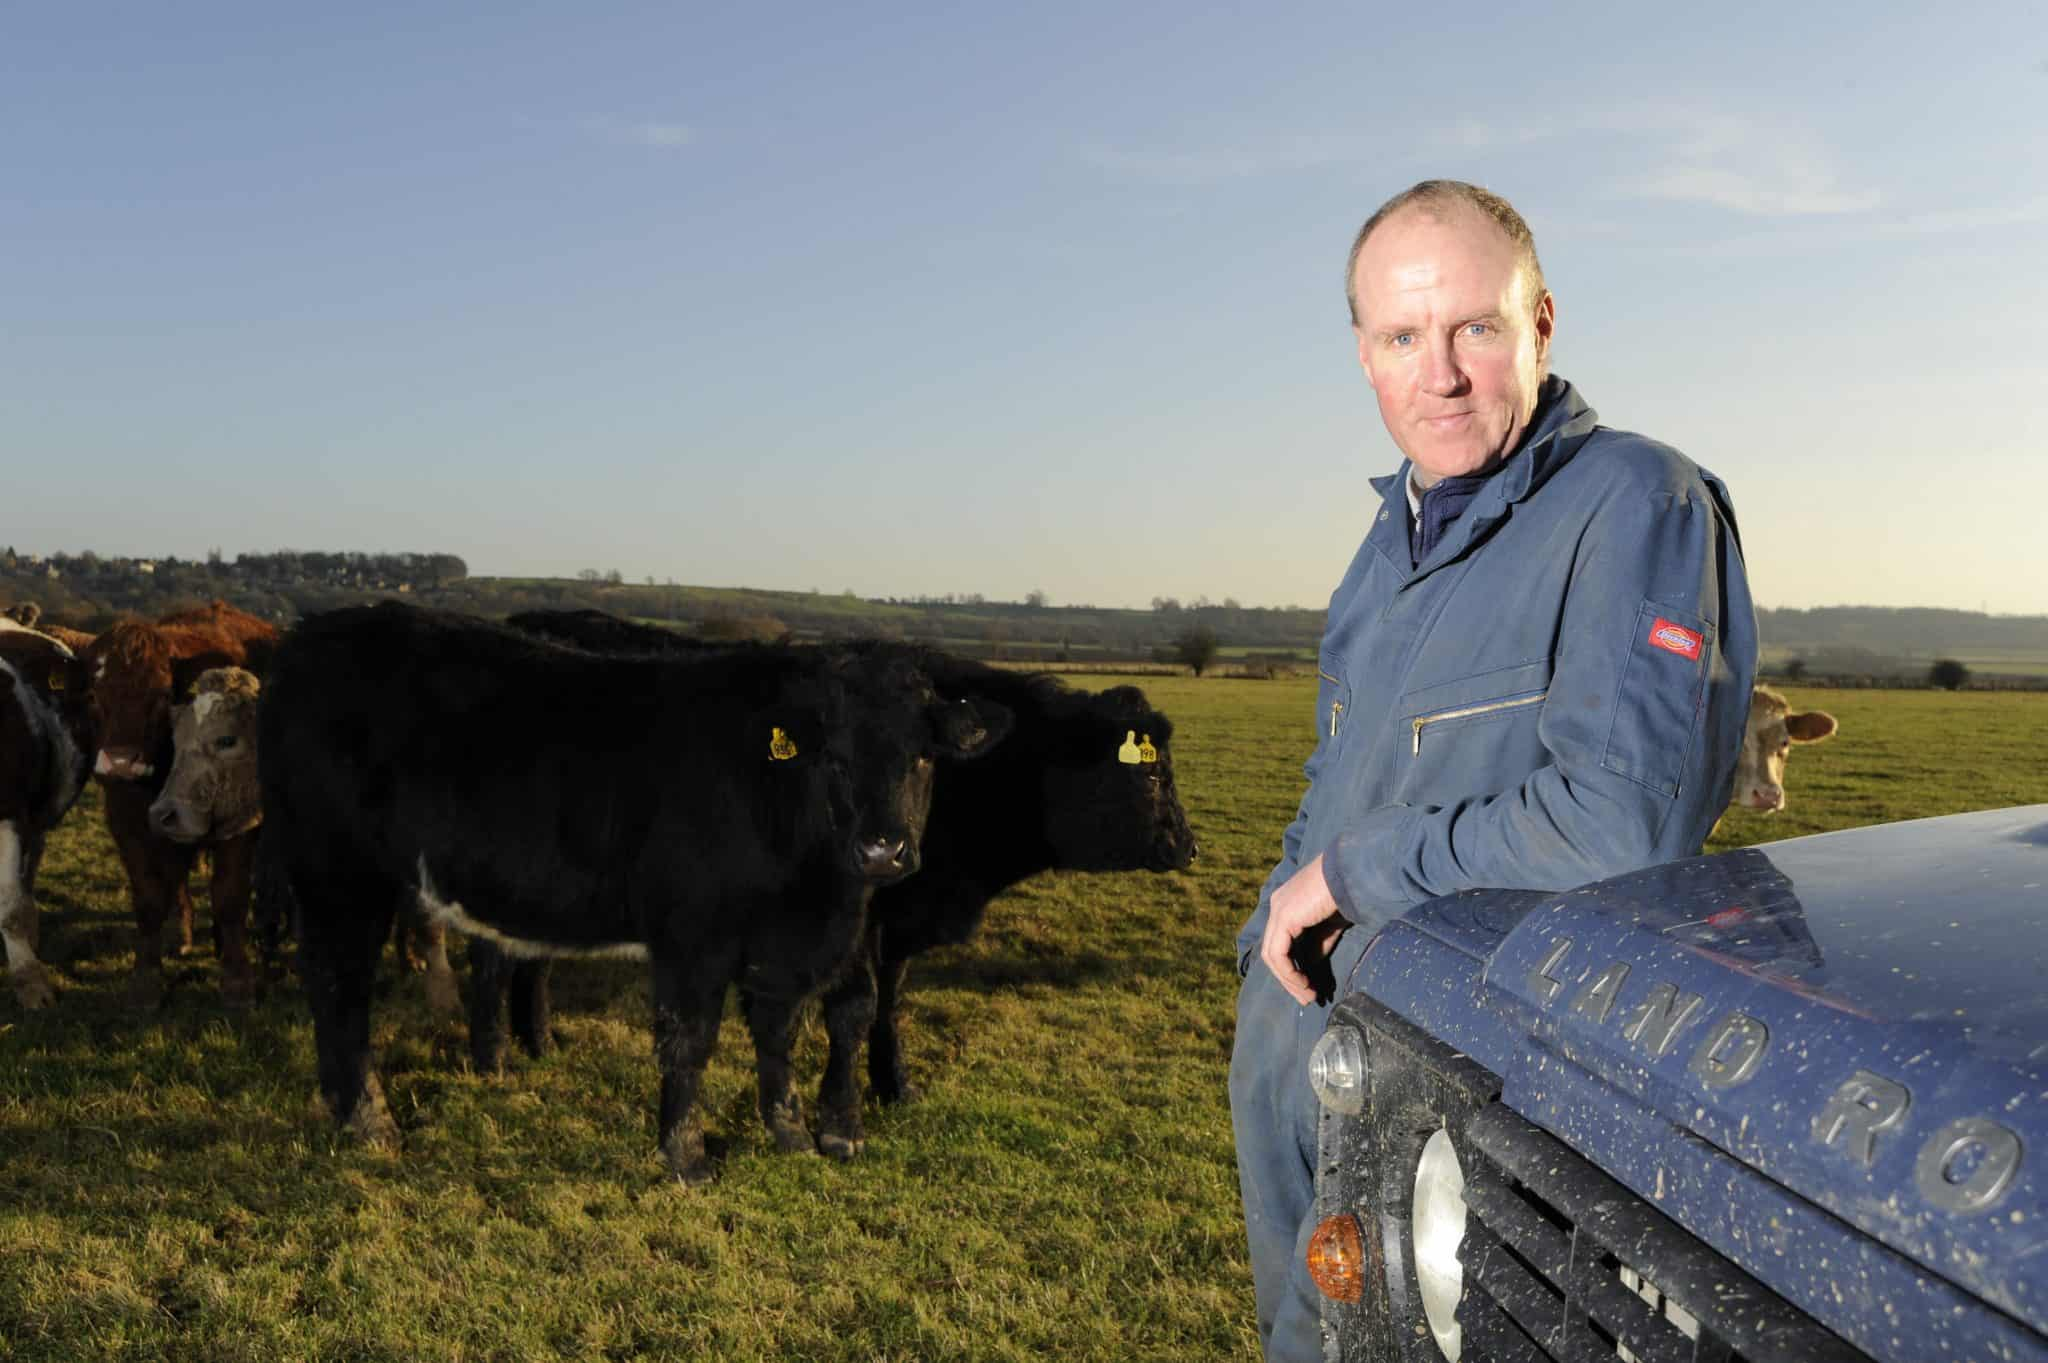 Andrew Brown, who farms grains in Rutland, East Midlands